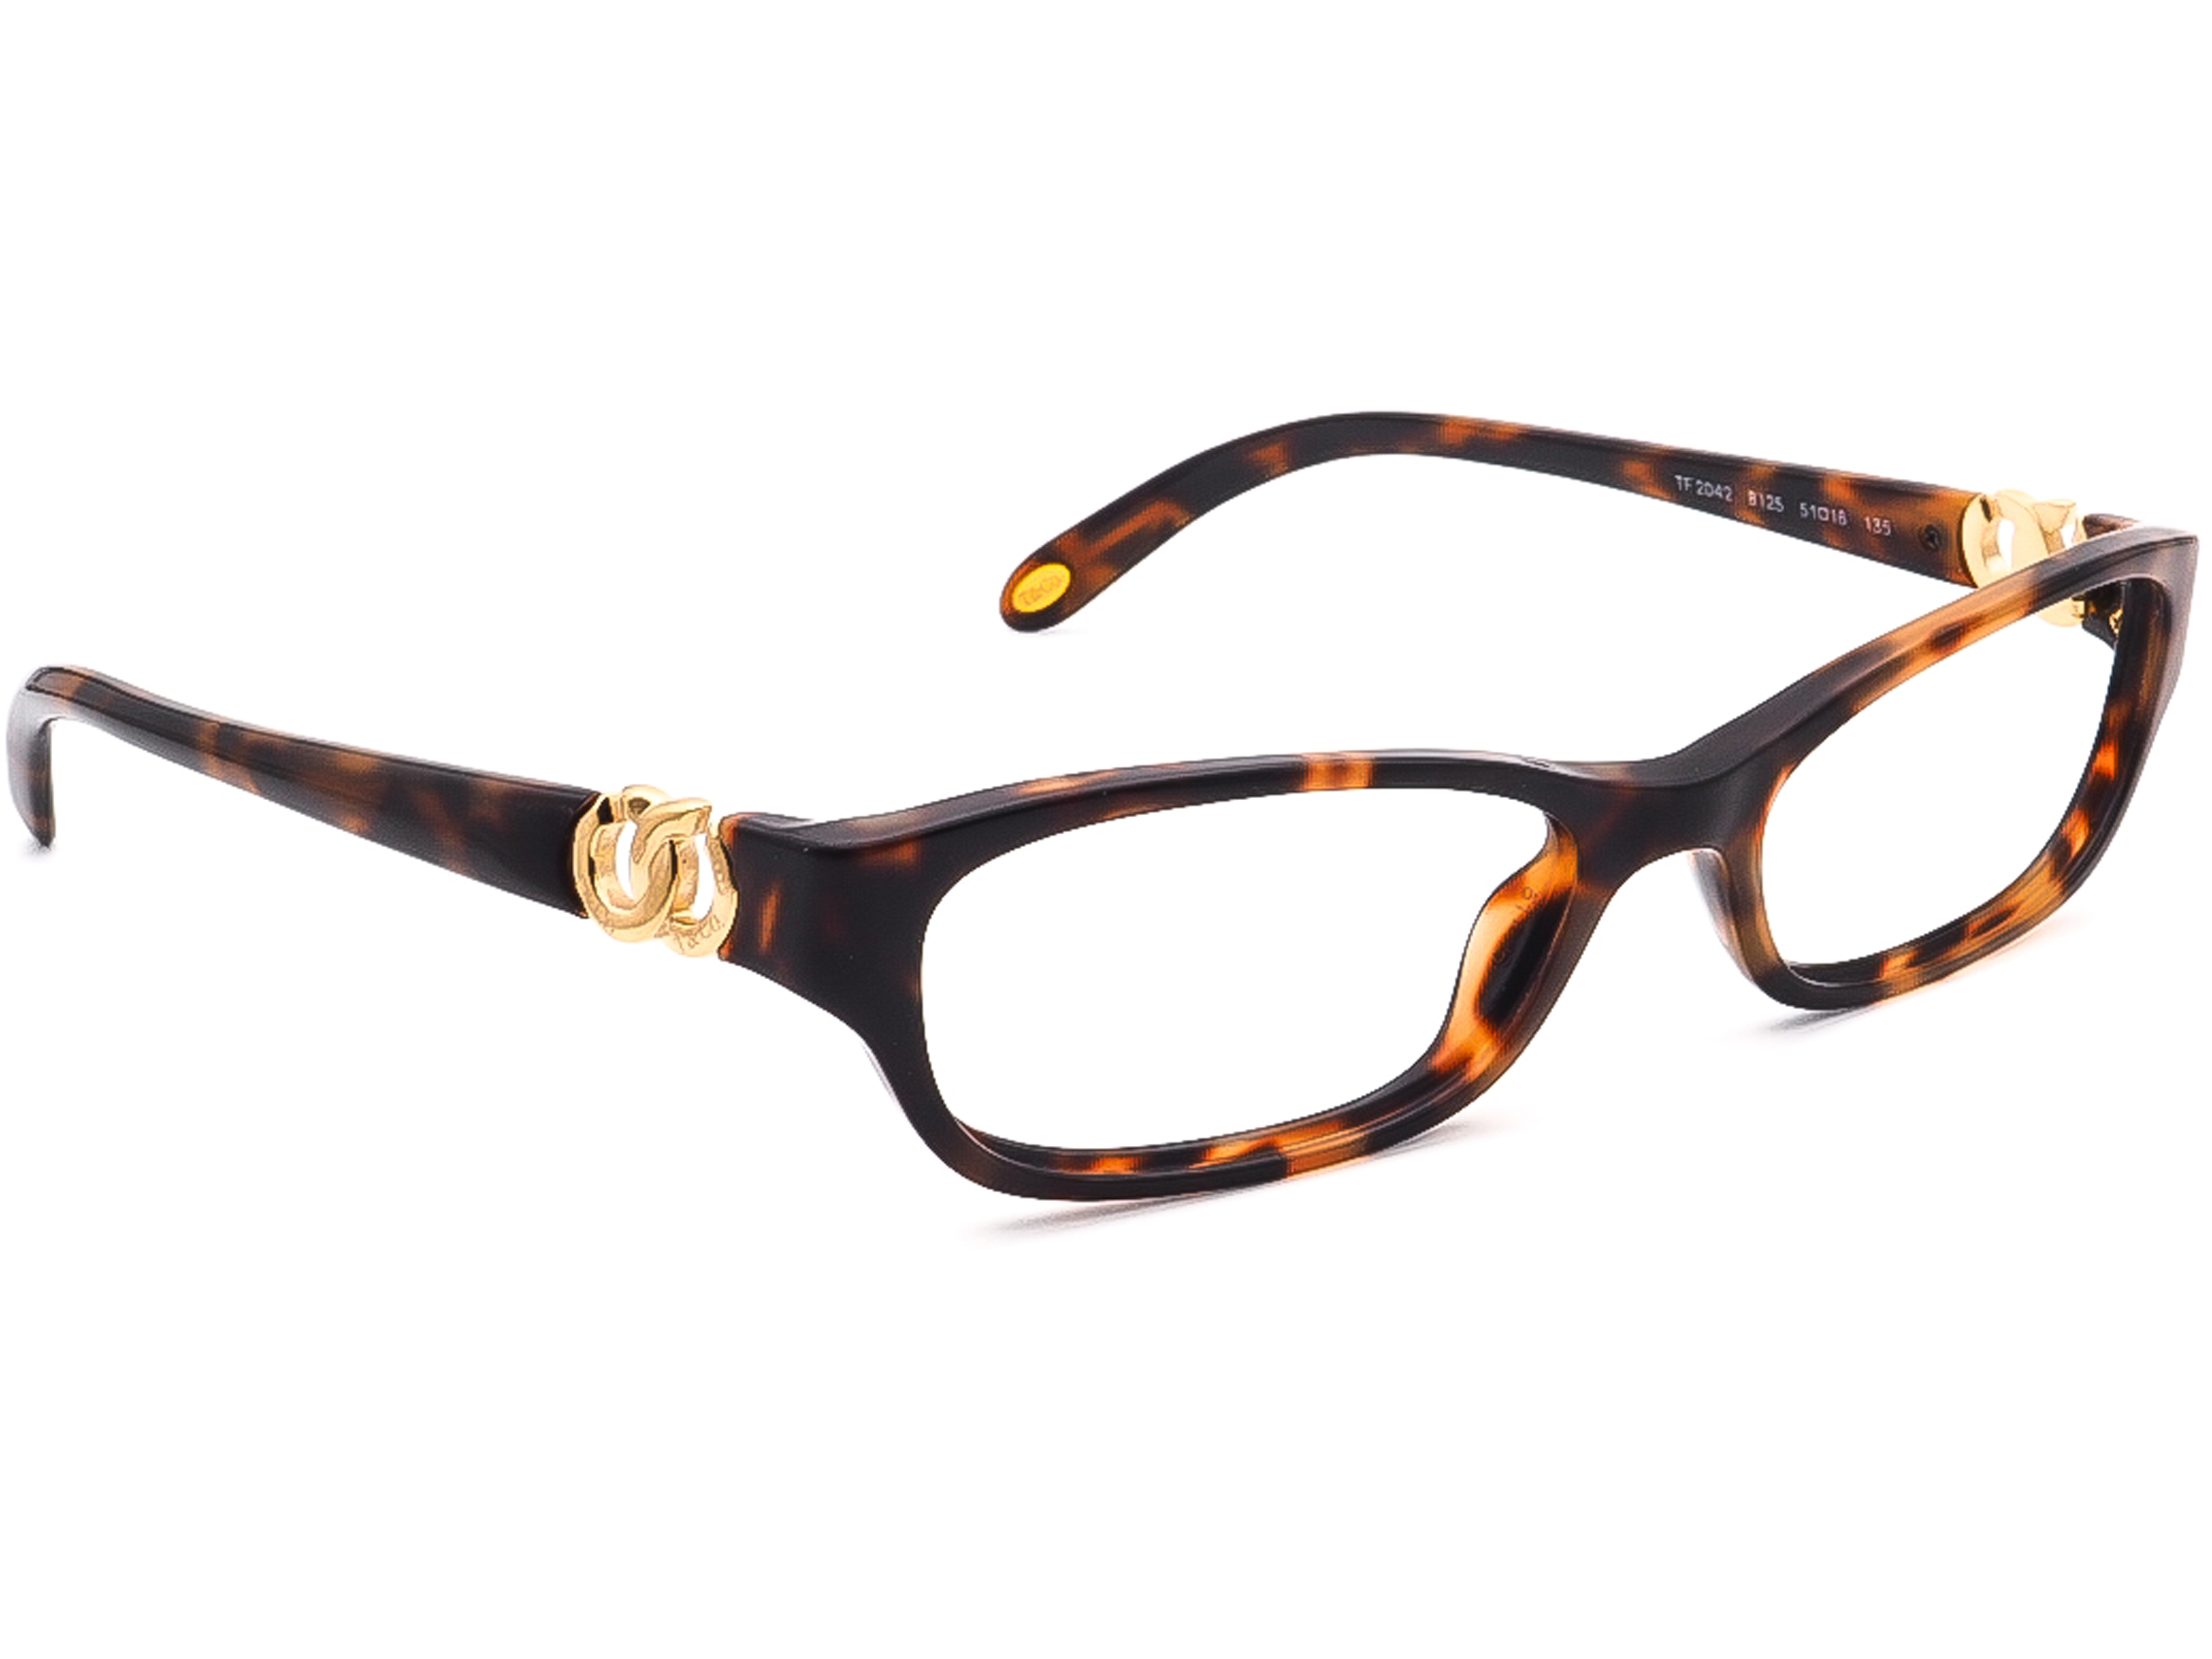 Tiffany & Co. TF 2042 8125 Eyeglasses